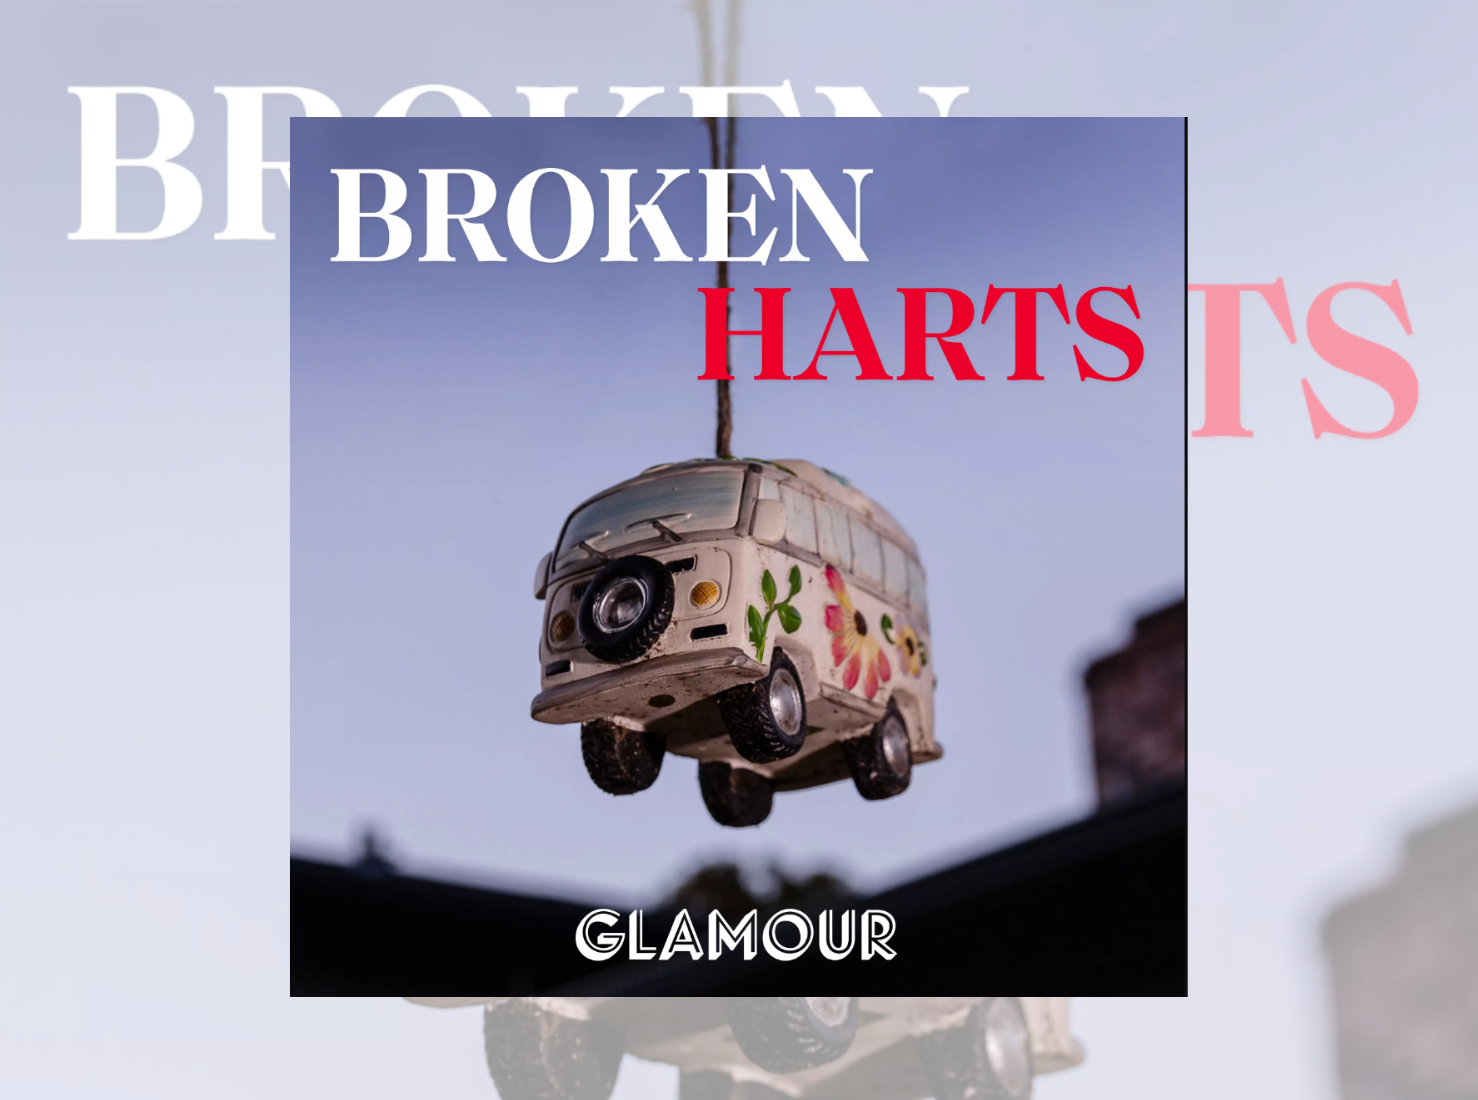 Broken Harts podcast is a great resource on the Hart family tragedy.